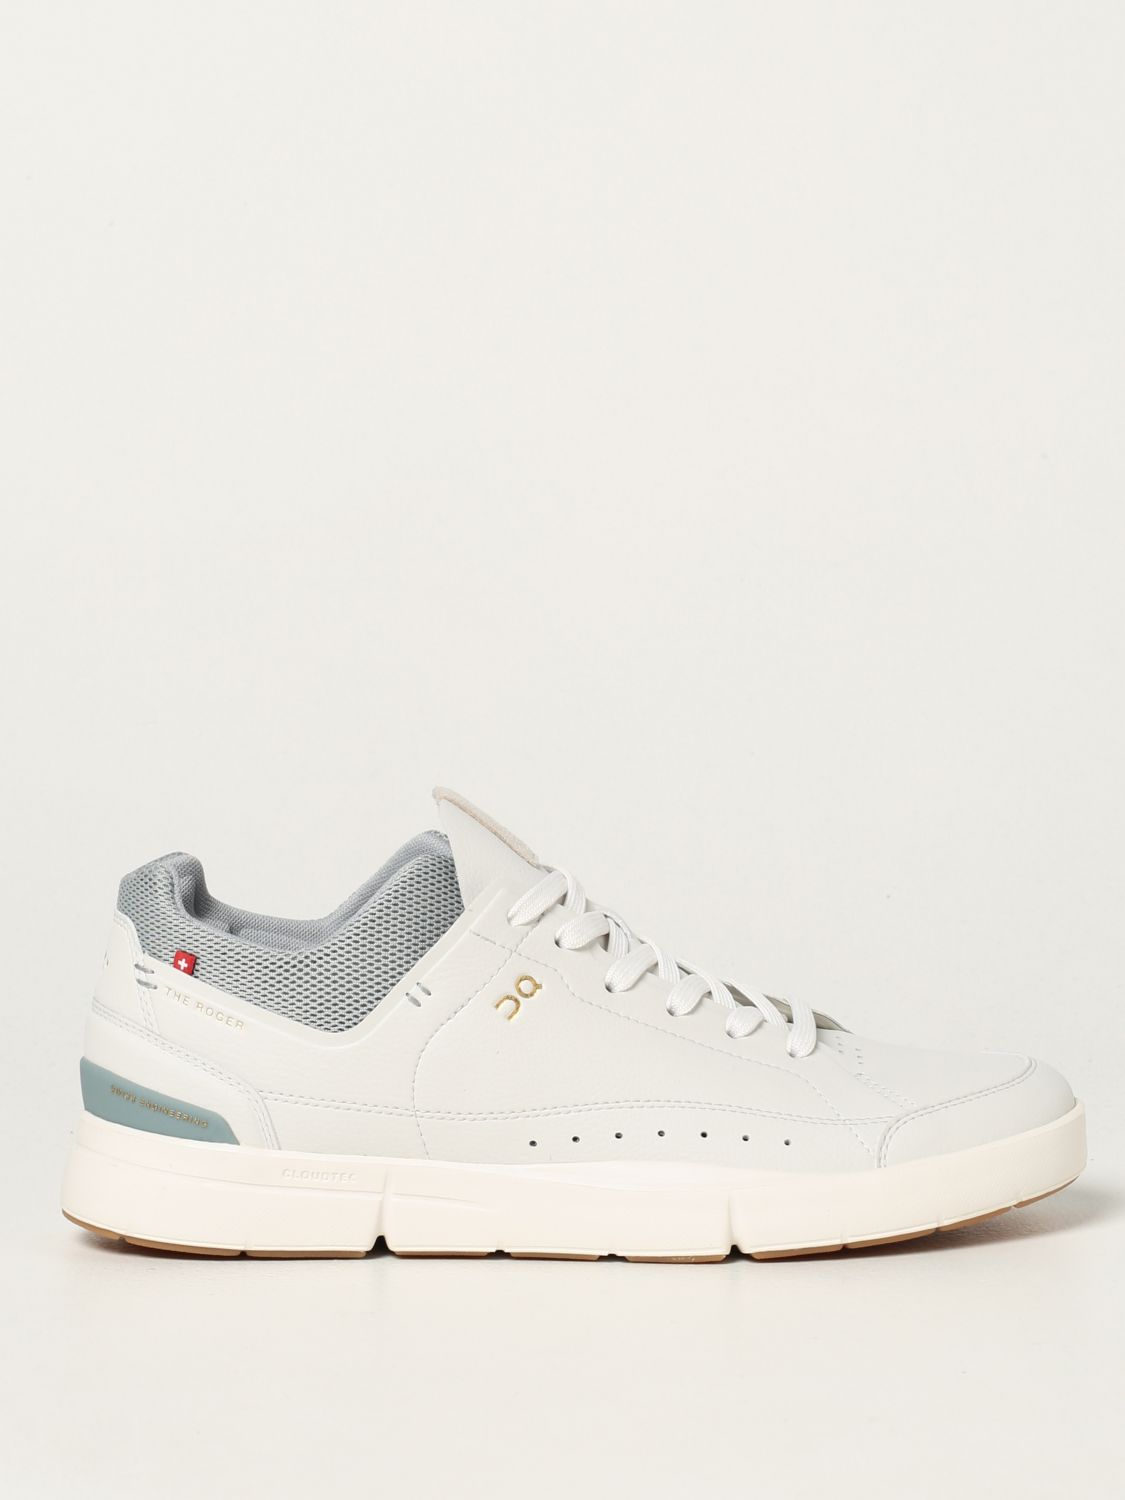 Baskets The Roger: Chaussures homme The Roger blanc 1